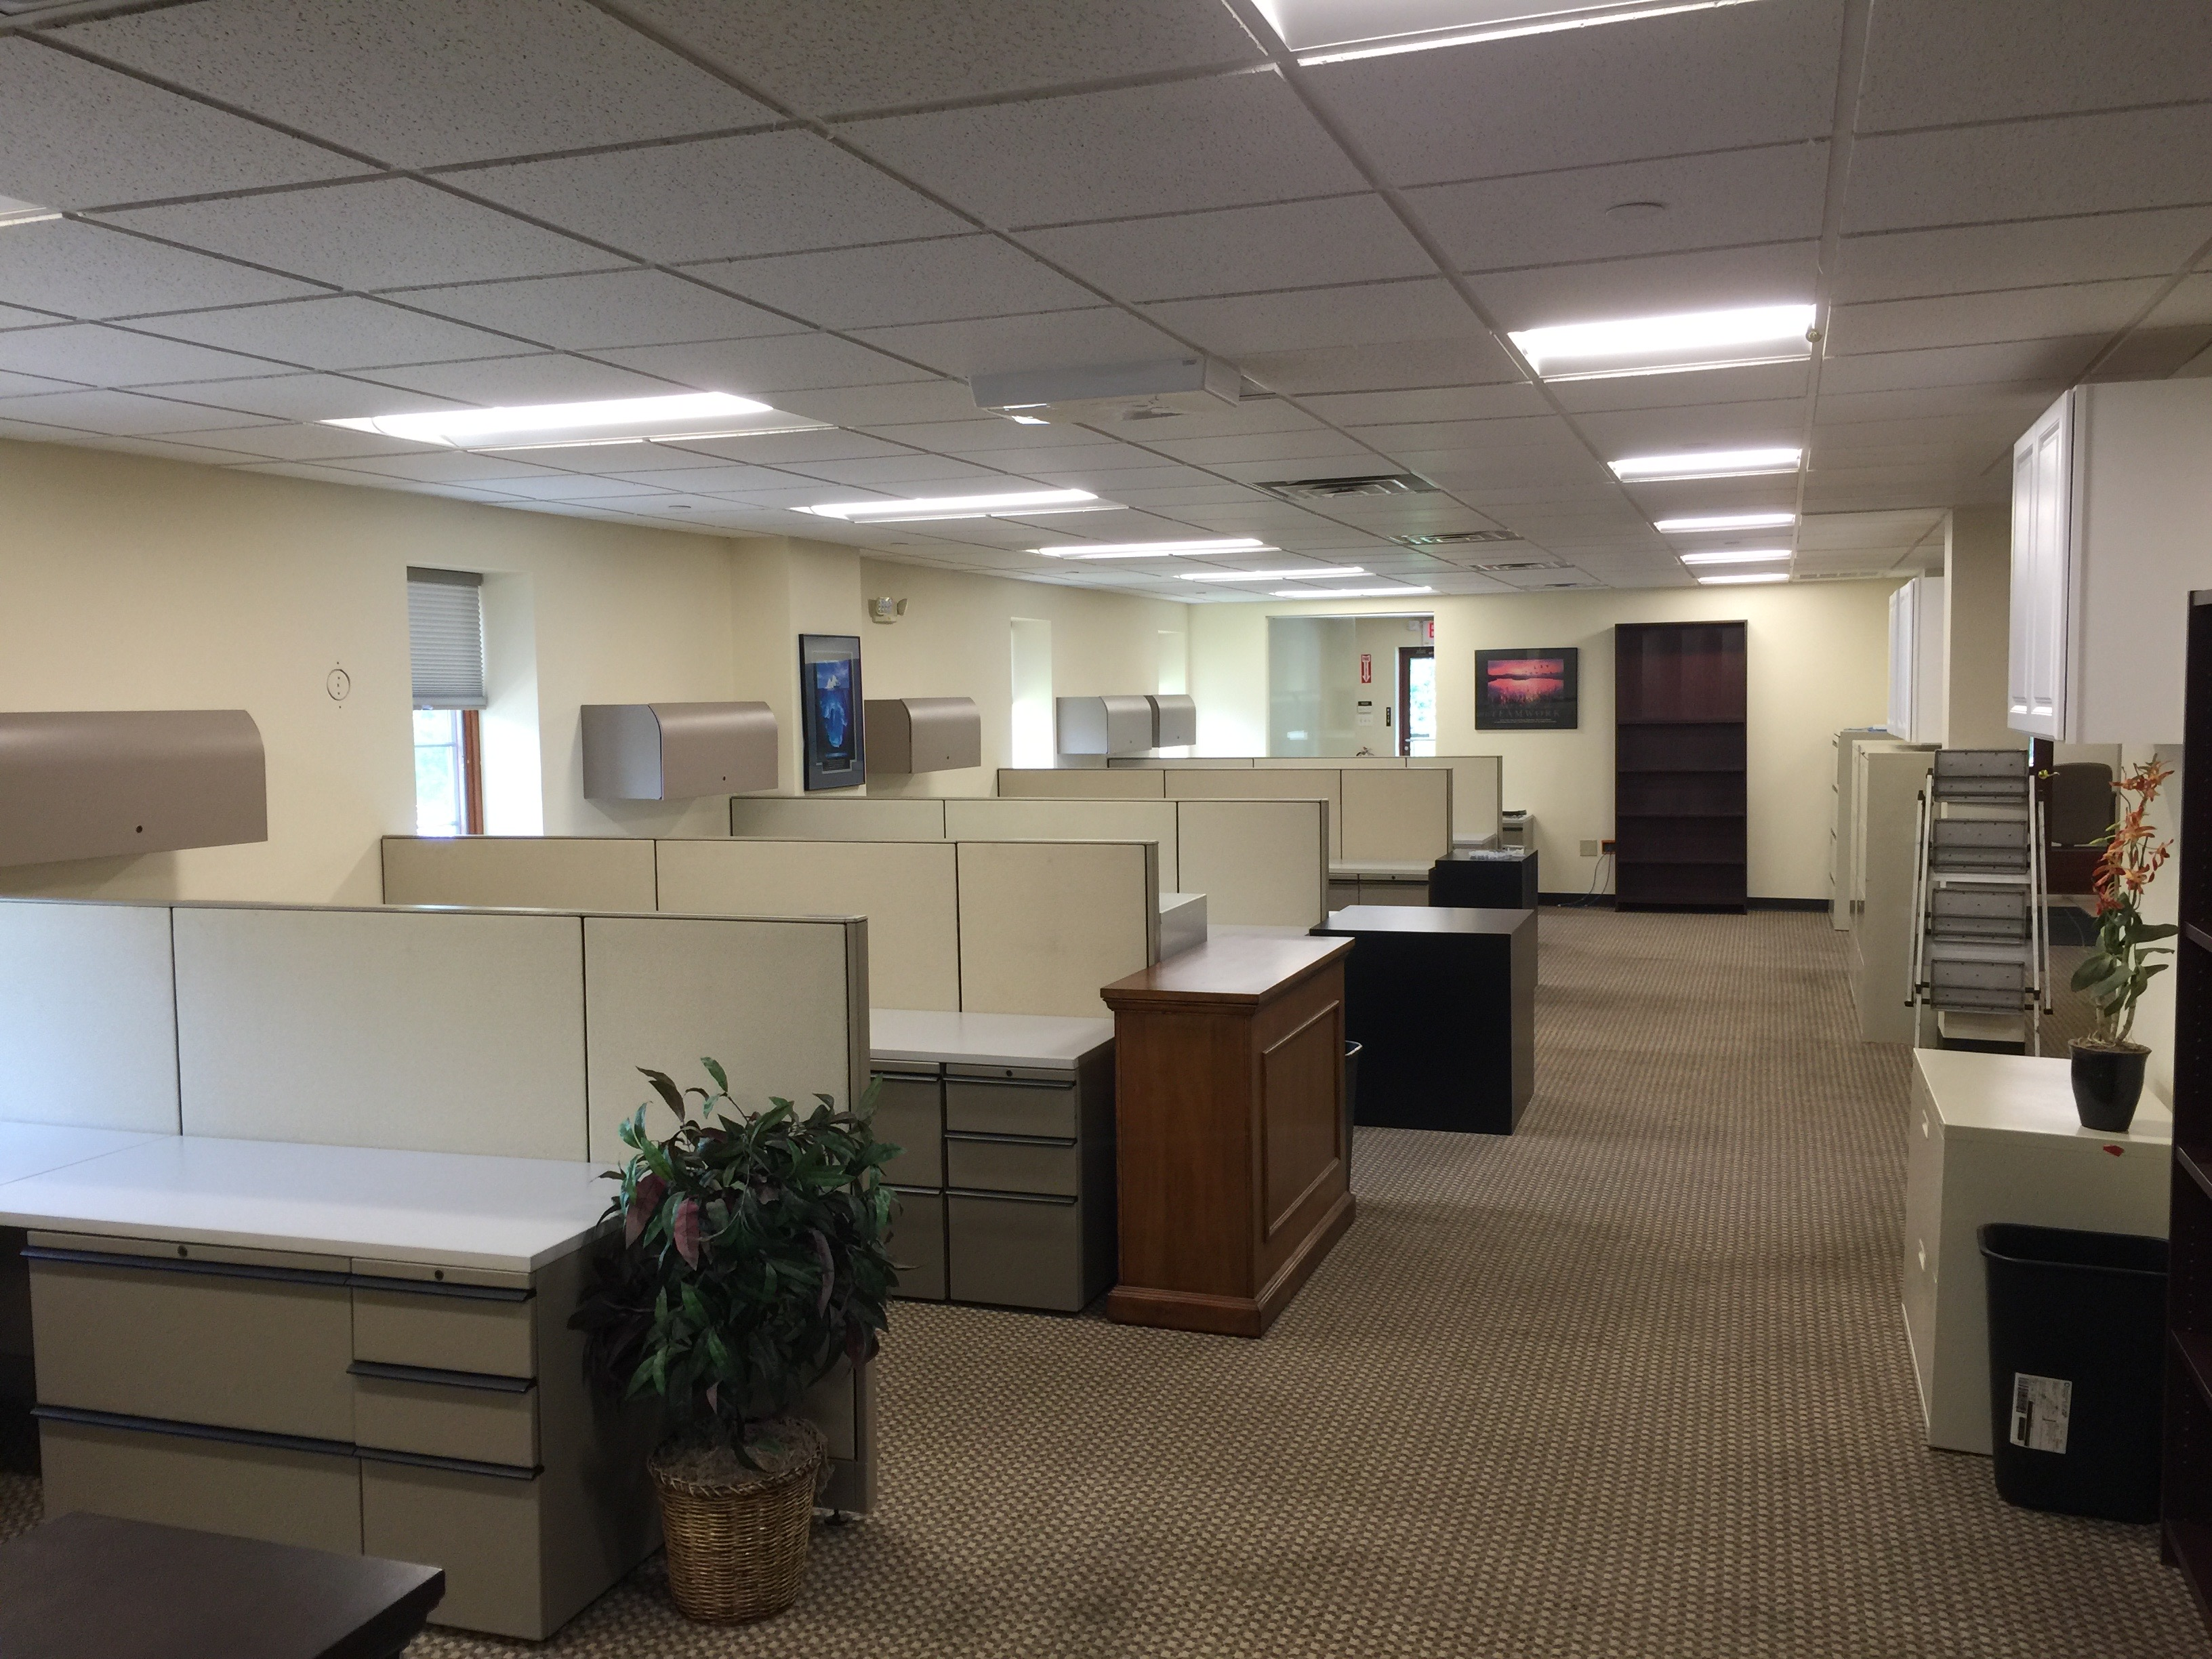 Touchstone Home Products Expands To New Facility Space In